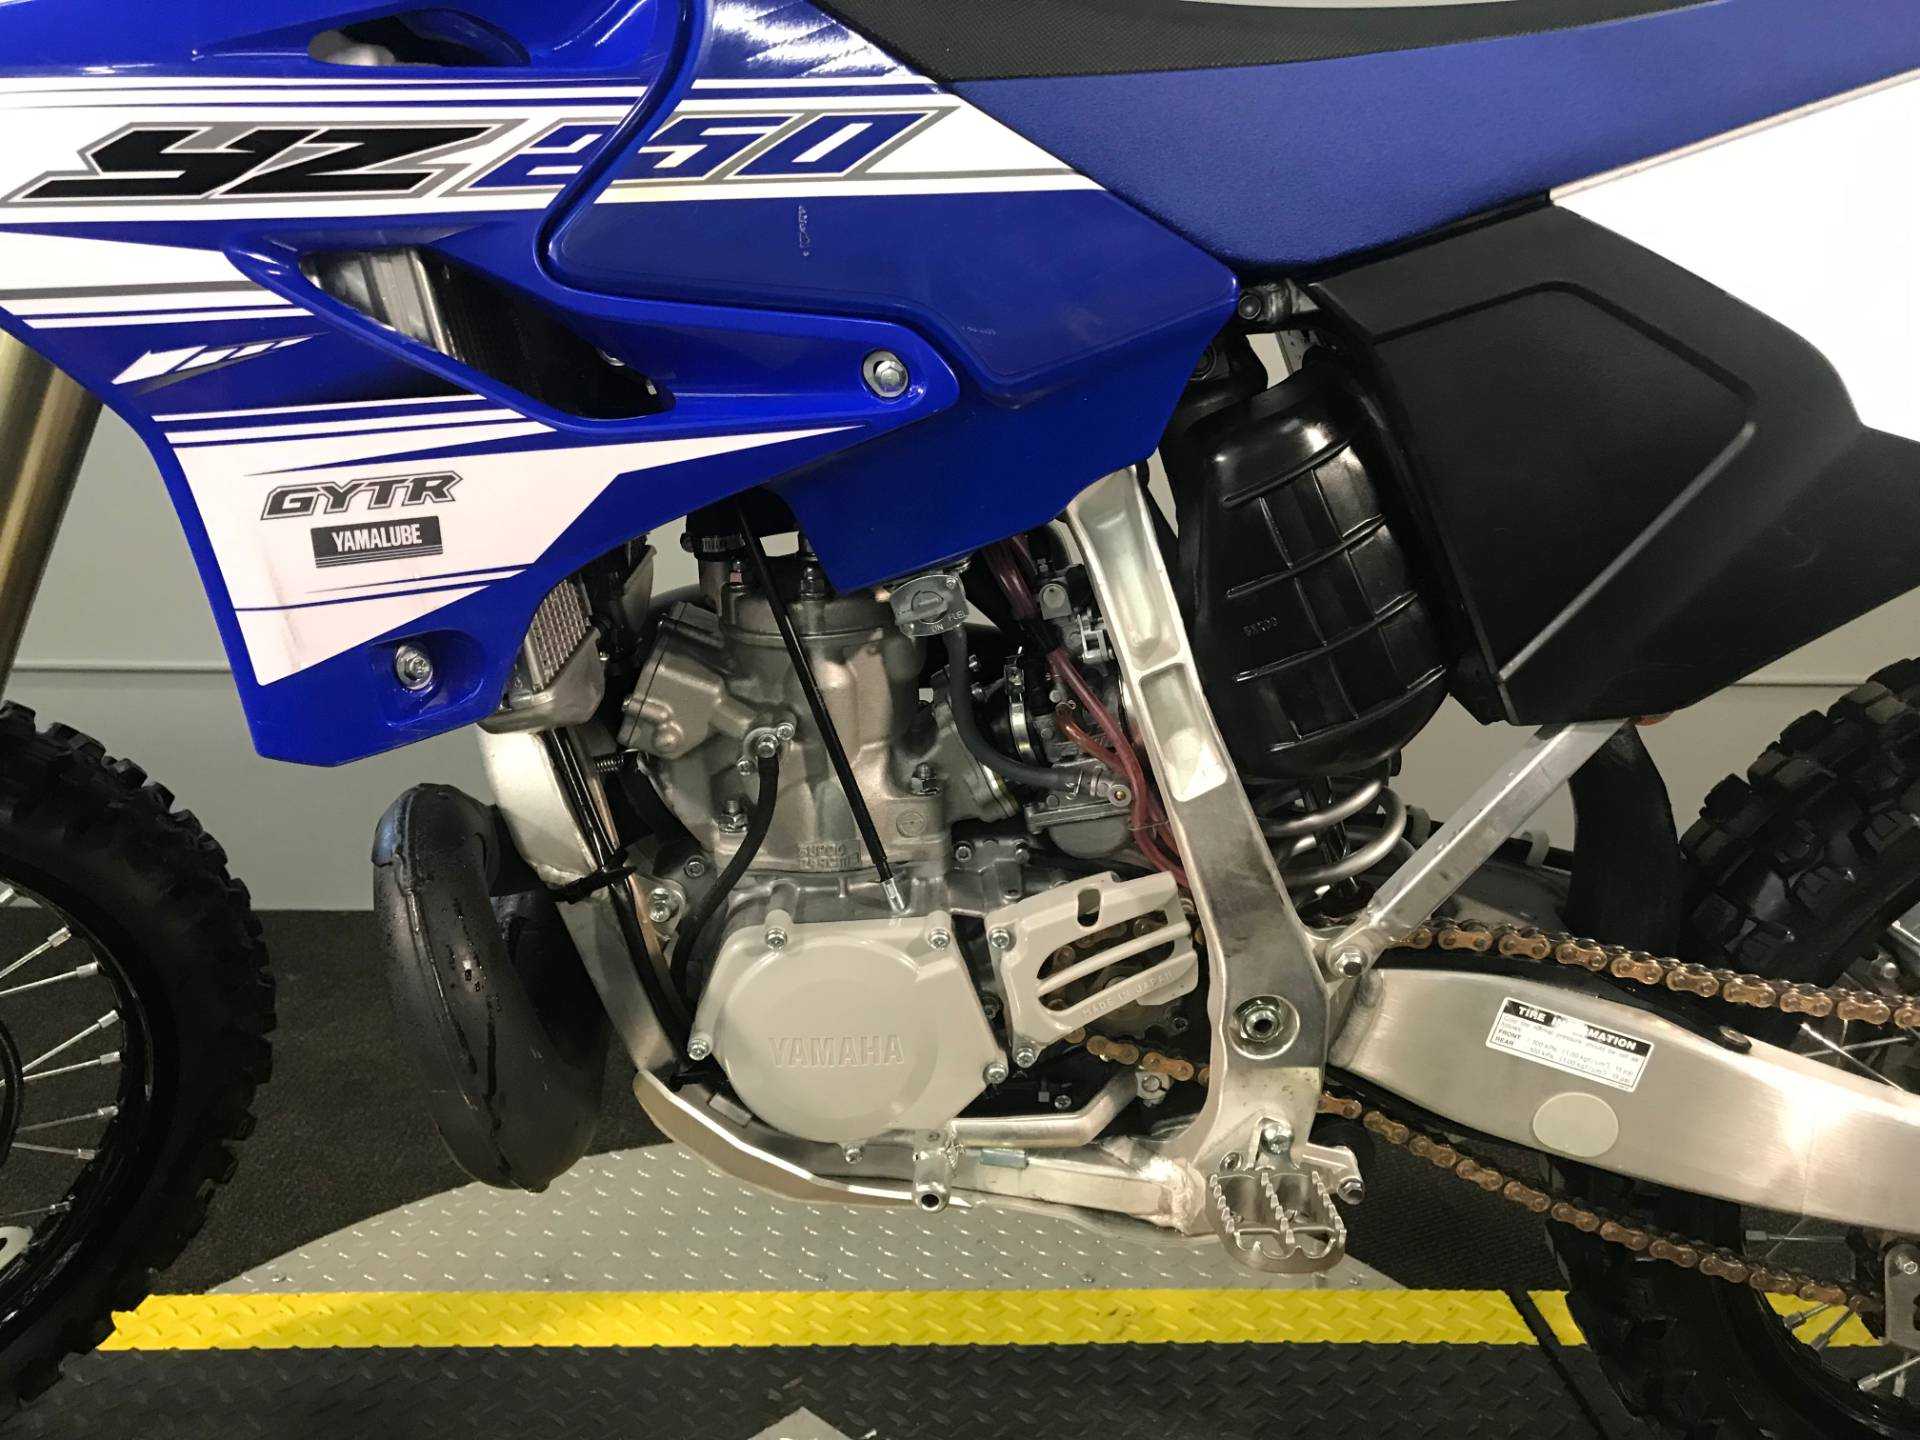 2016 Yamaha Yz250 In Tyrone Pennsylvania Photo 7